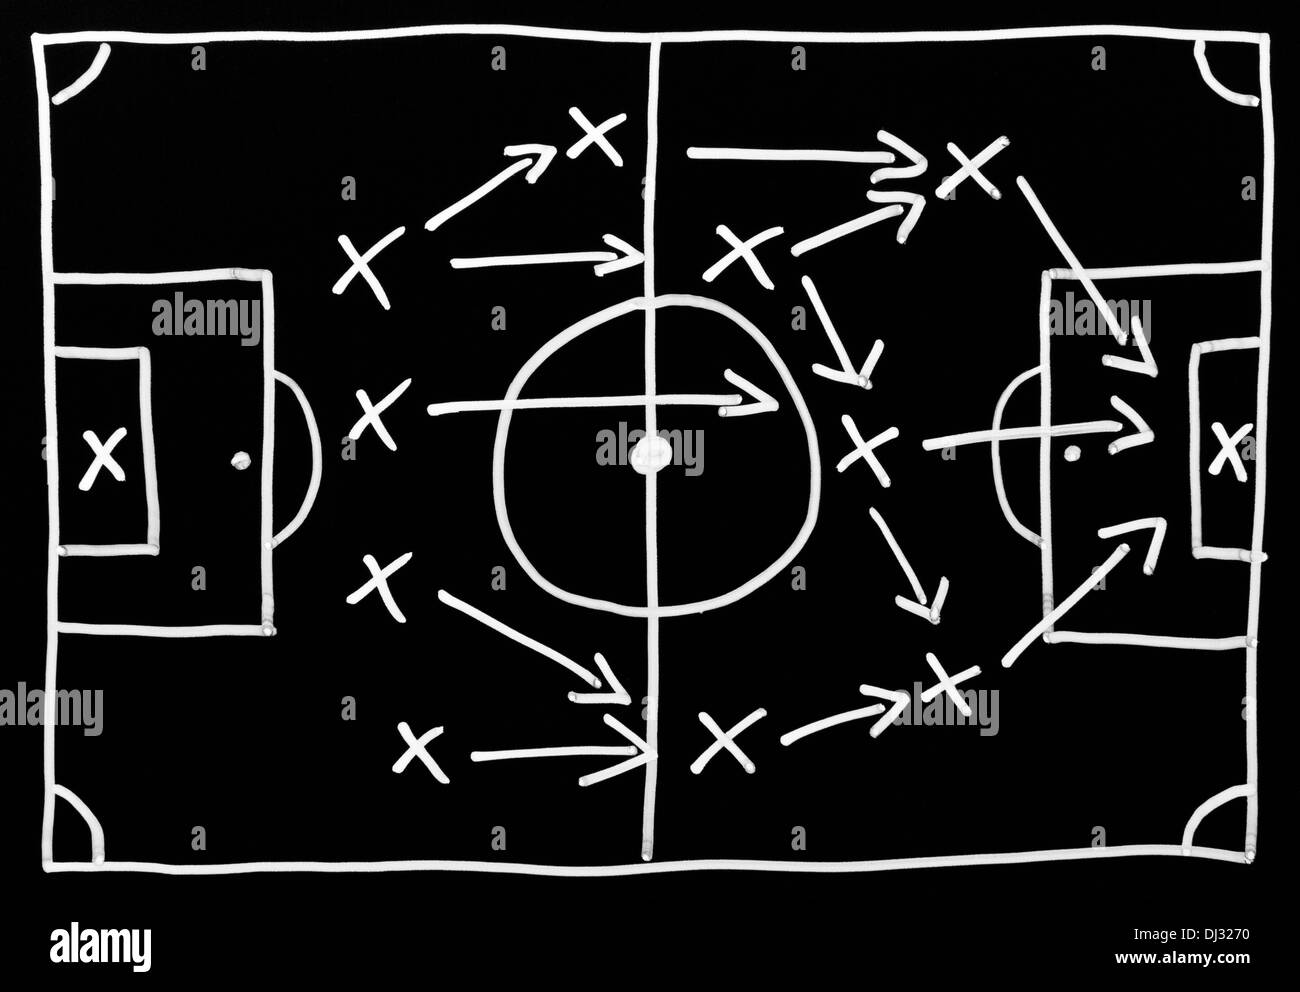 Tactics Black And White Stock Photos Images Alamy Four Move Checkmate Diagram Soccer Image